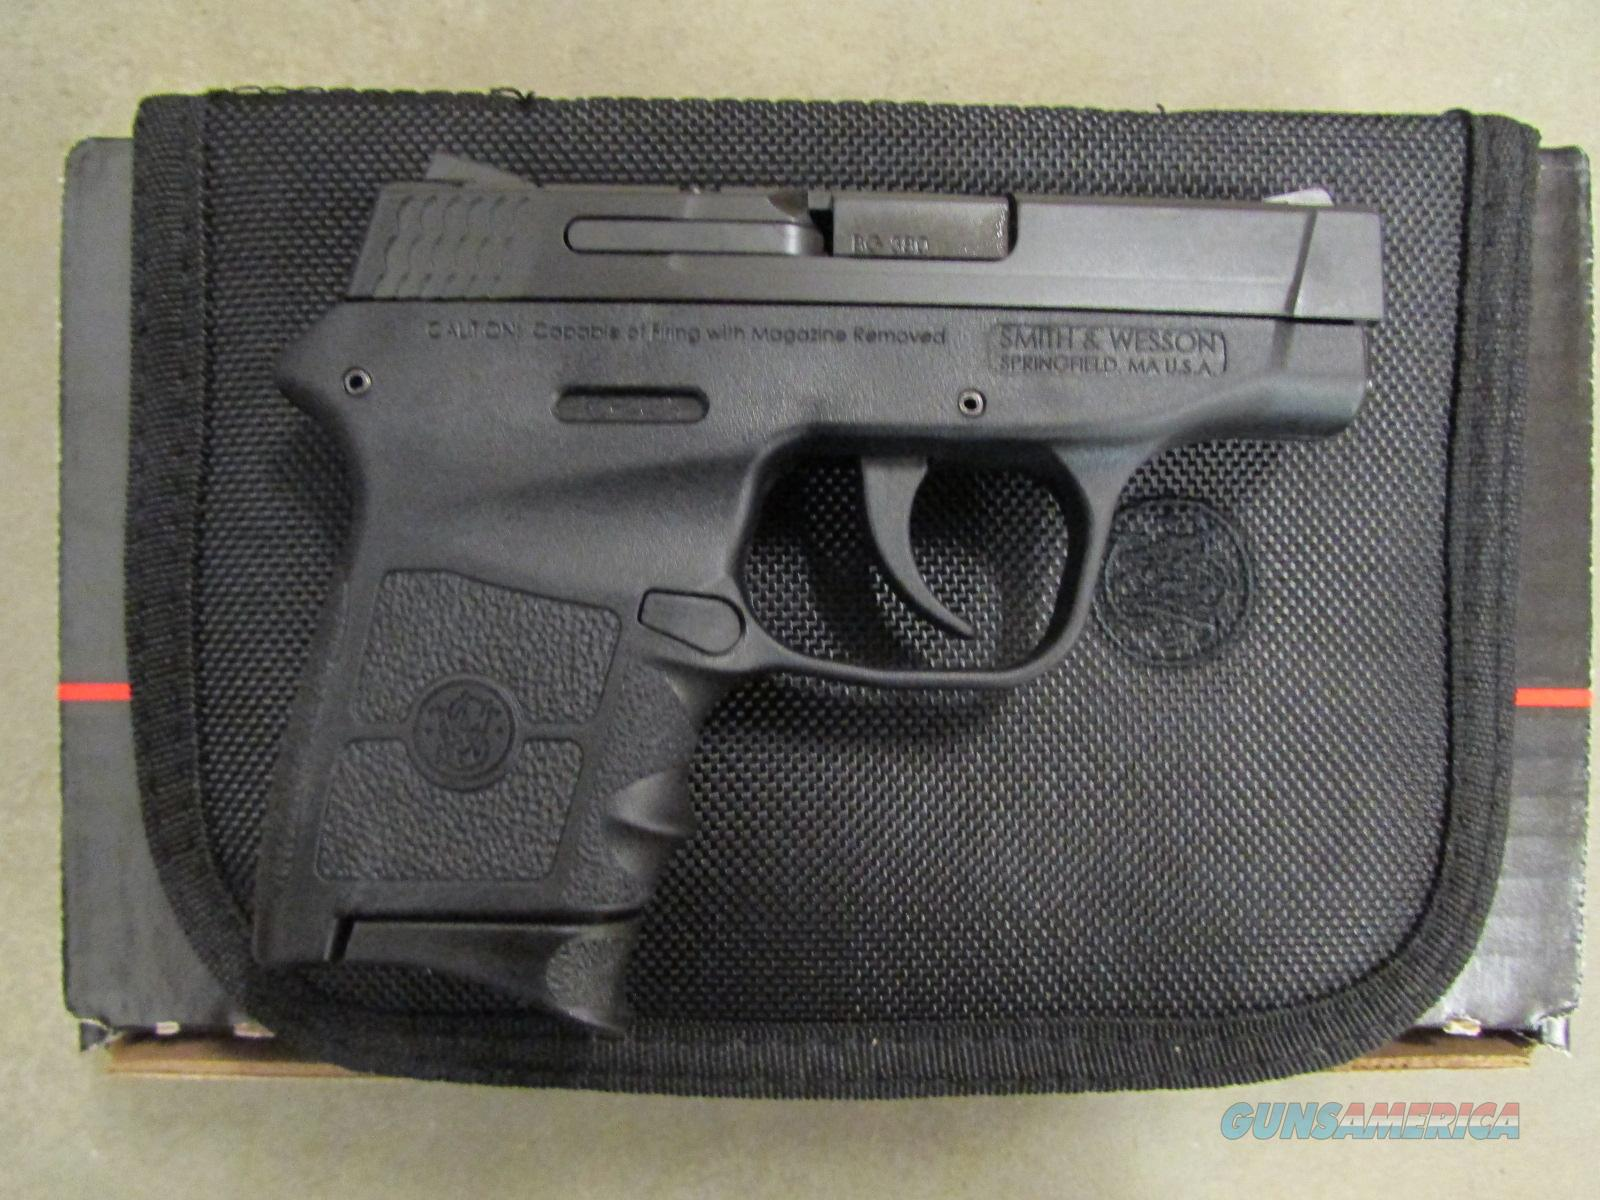 Smith & Wesson Model M&P BodyGuard .380 ACP/AUTO 109381  Guns > Pistols > Smith & Wesson Pistols - Autos > Polymer Frame